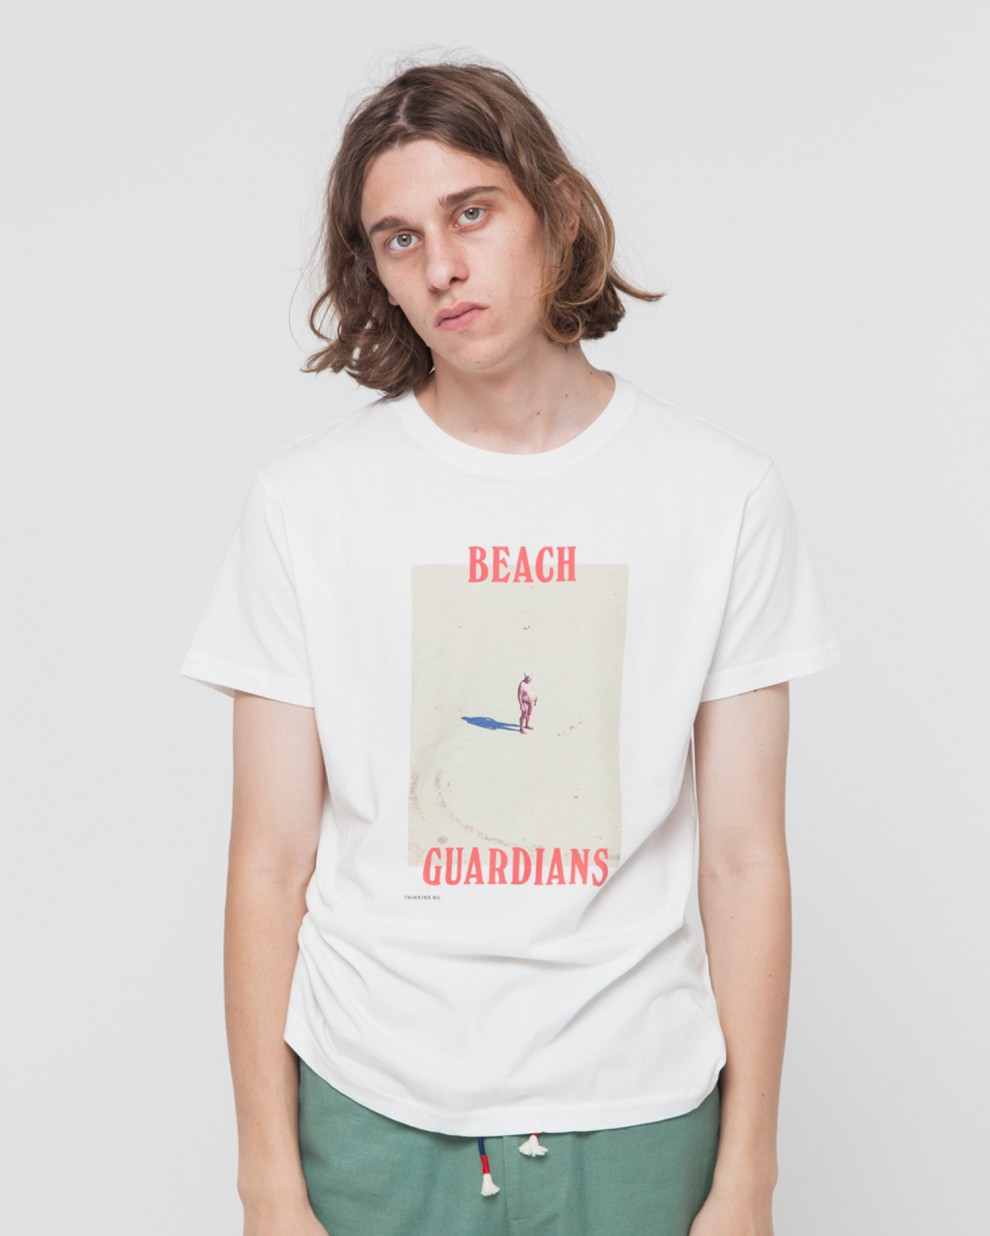 Beach Guardians Tee